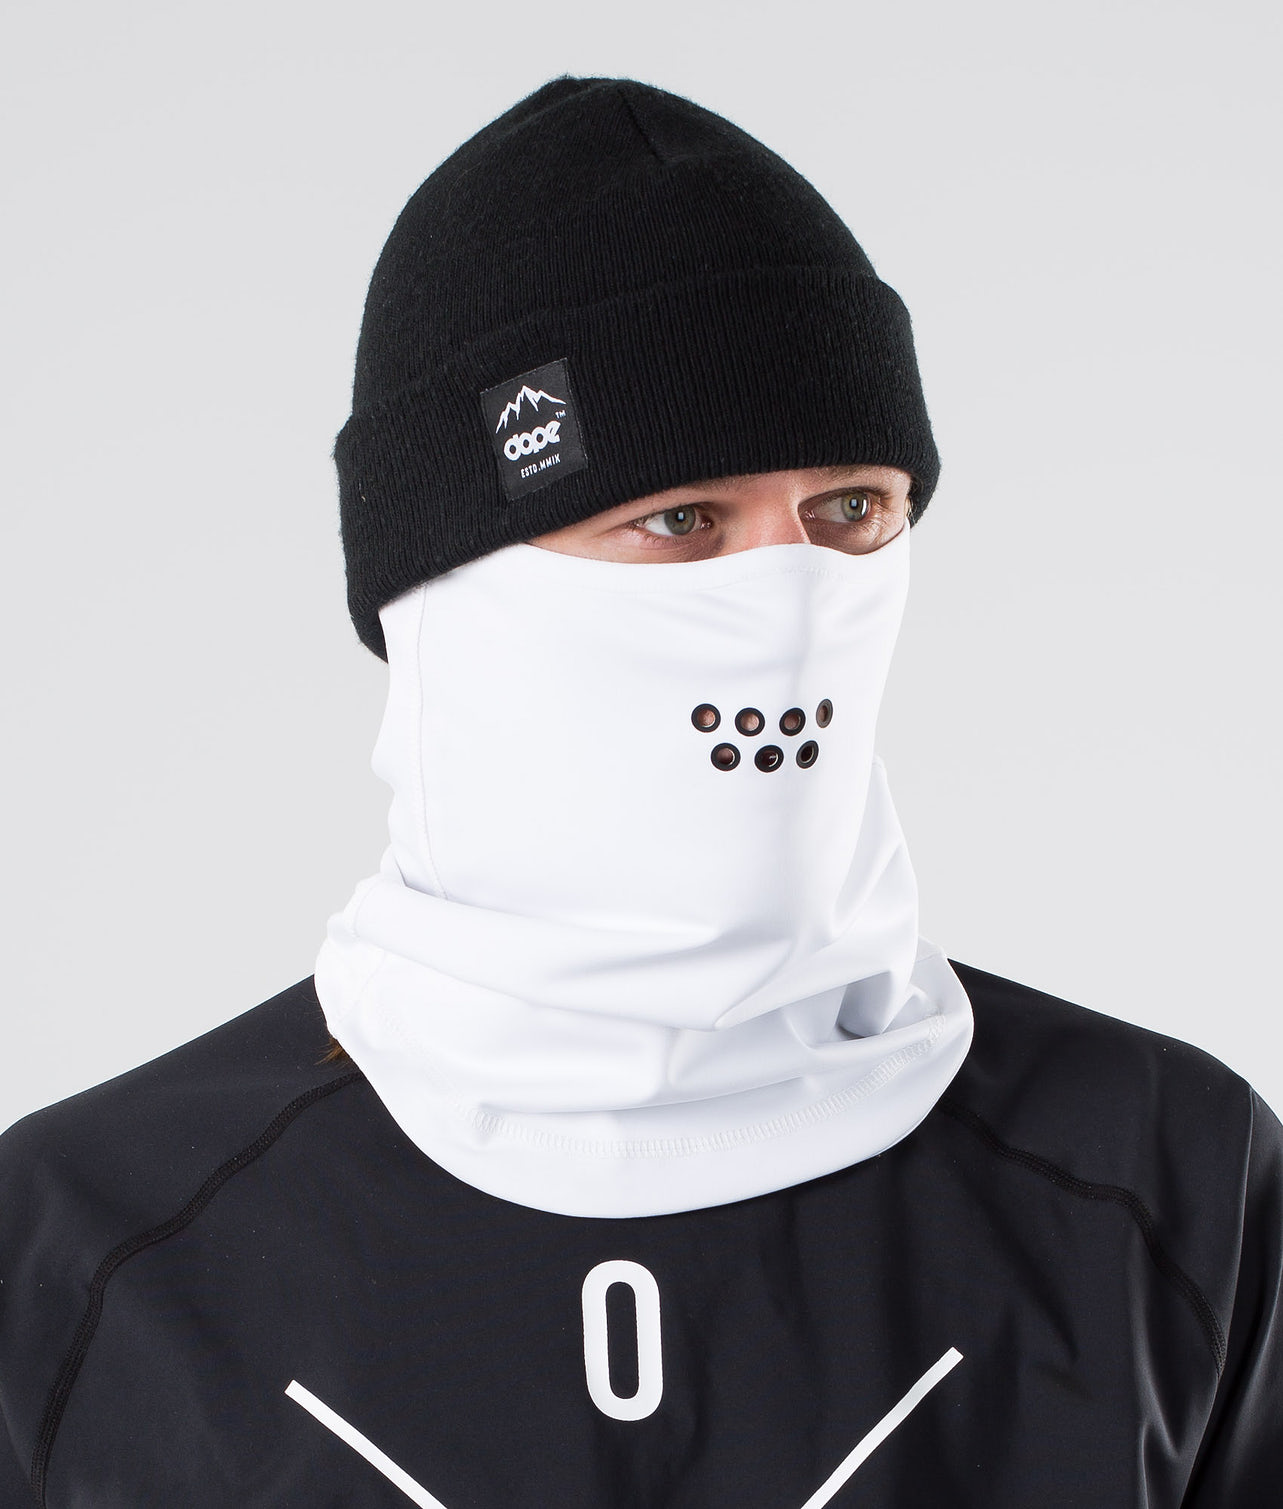 Buy Stanton Facemask from Dope at Ridestore.com - Always free shipping, free returns and 30 days money back guarantee